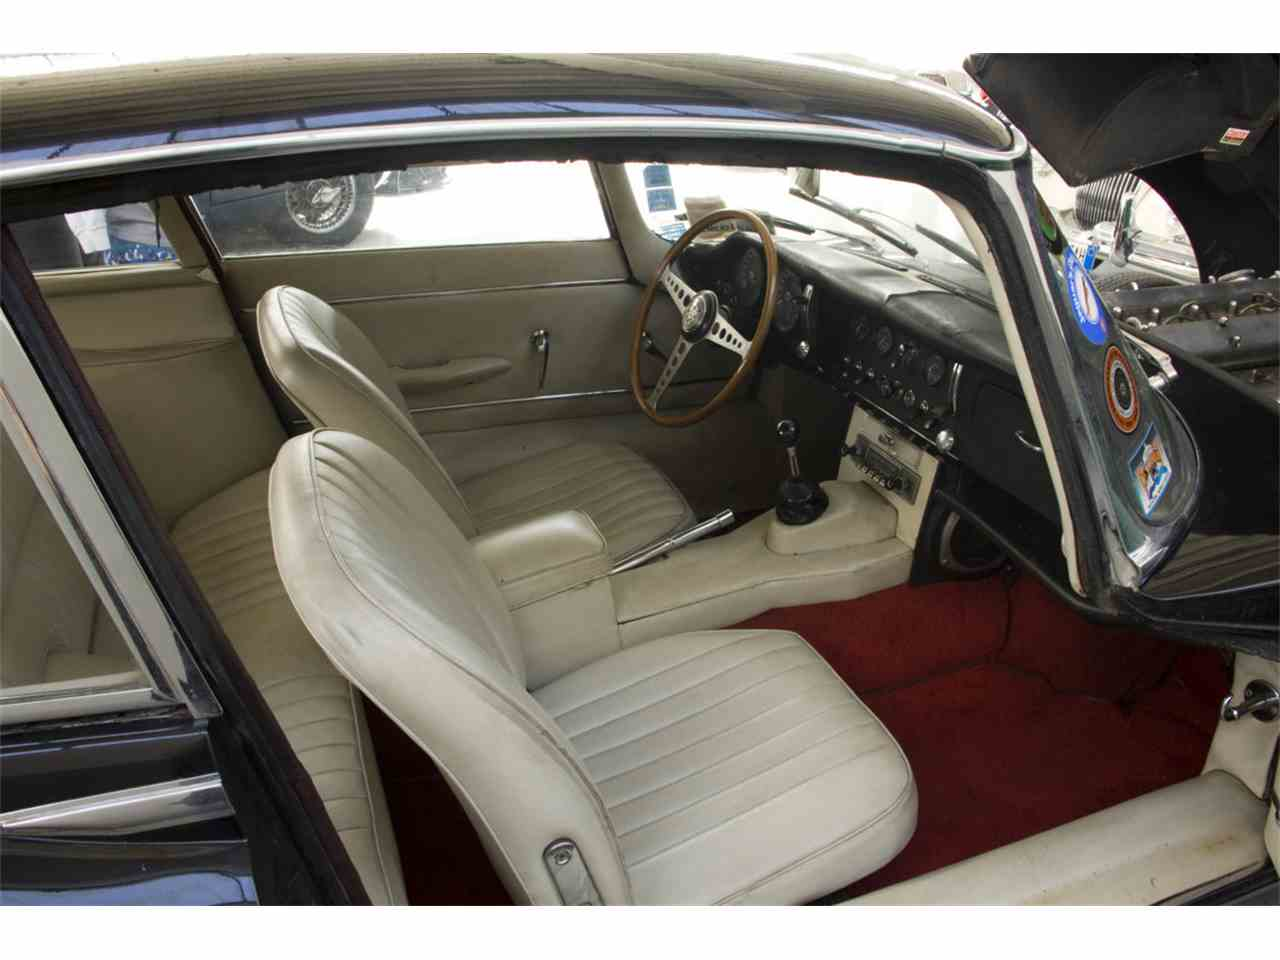 Large Picture of Classic 1966 Jaguar E-Type located in MIlano Italy - $89,000.00 Offered by a Private Seller - MWBQ